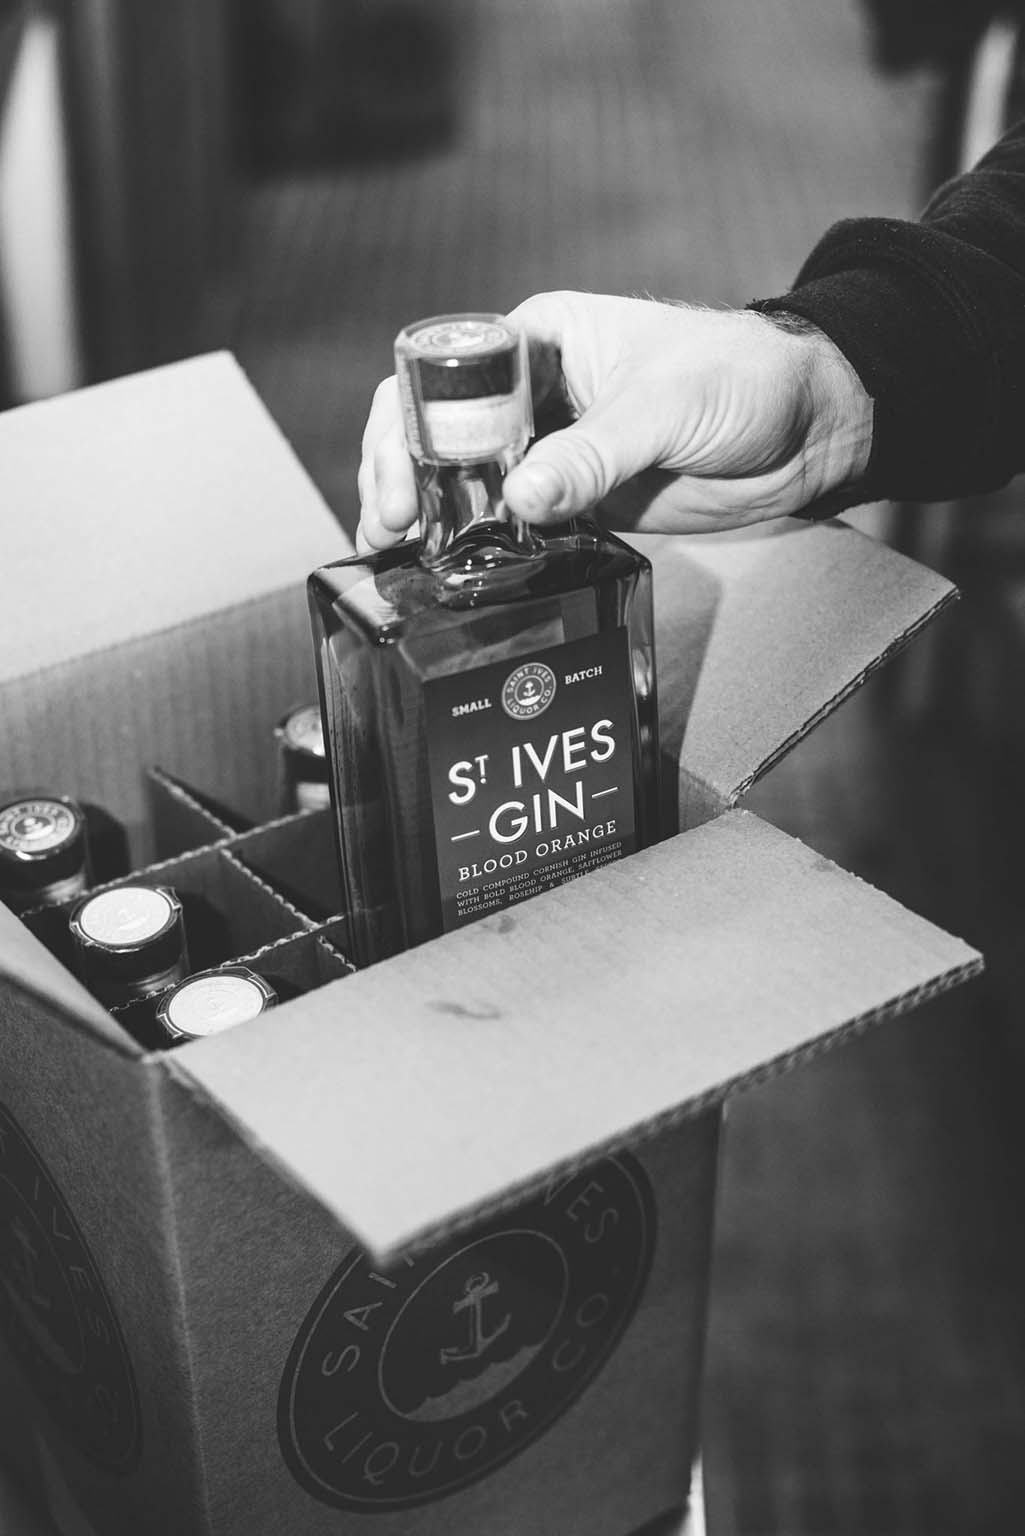 St Ives Blood Orange being packed in black and white